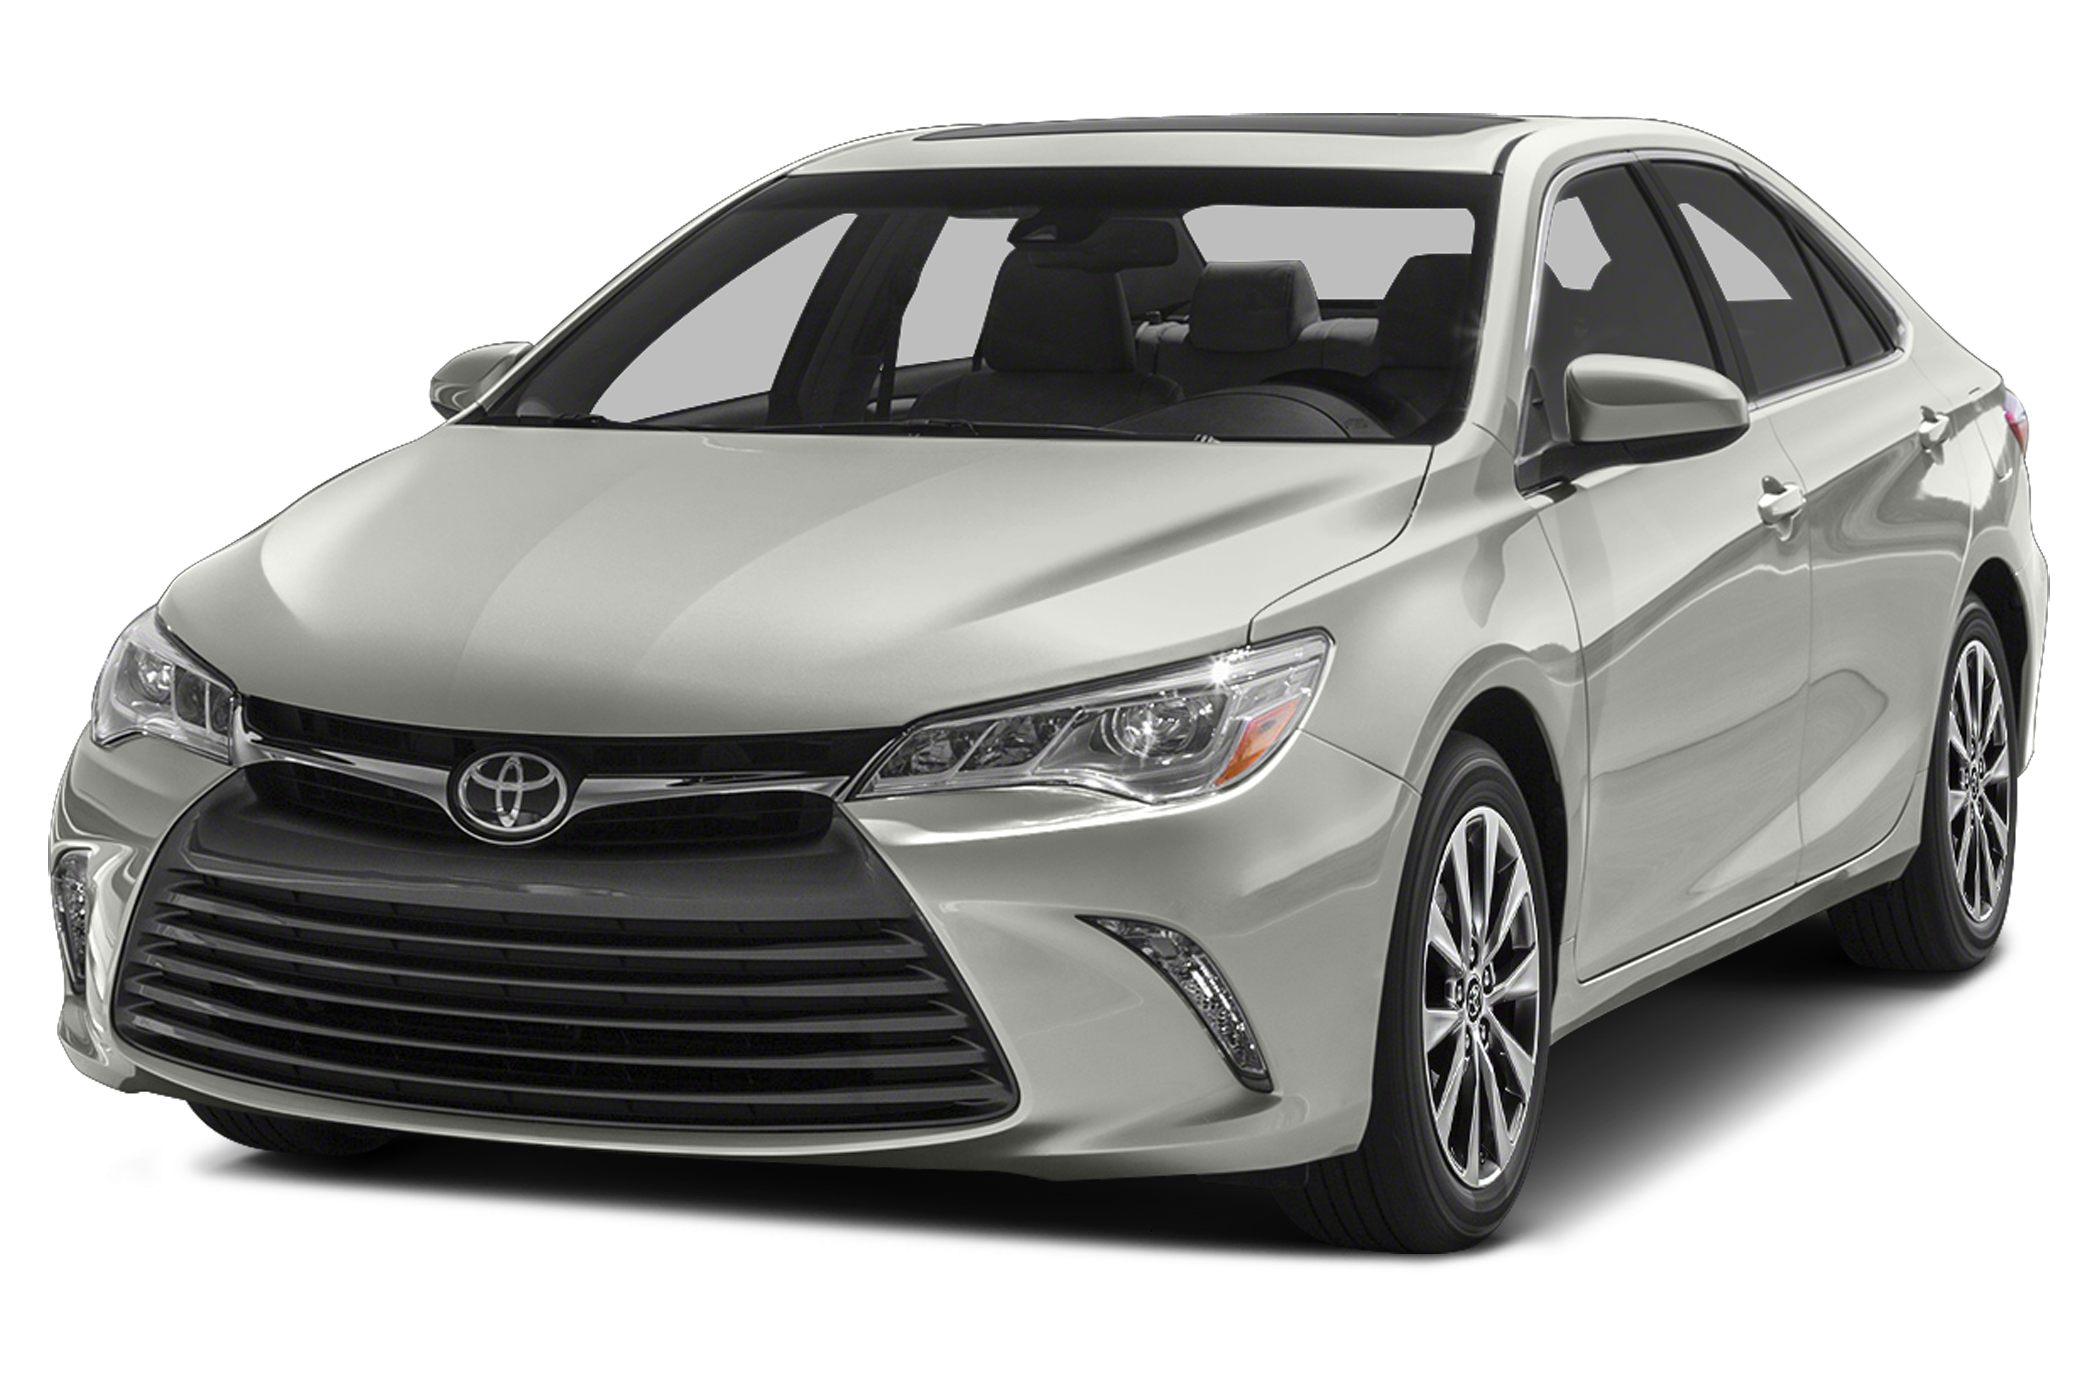 2015 Toyota Camry LE Sedan for sale in Springfield for $19,232 with 0 miles.